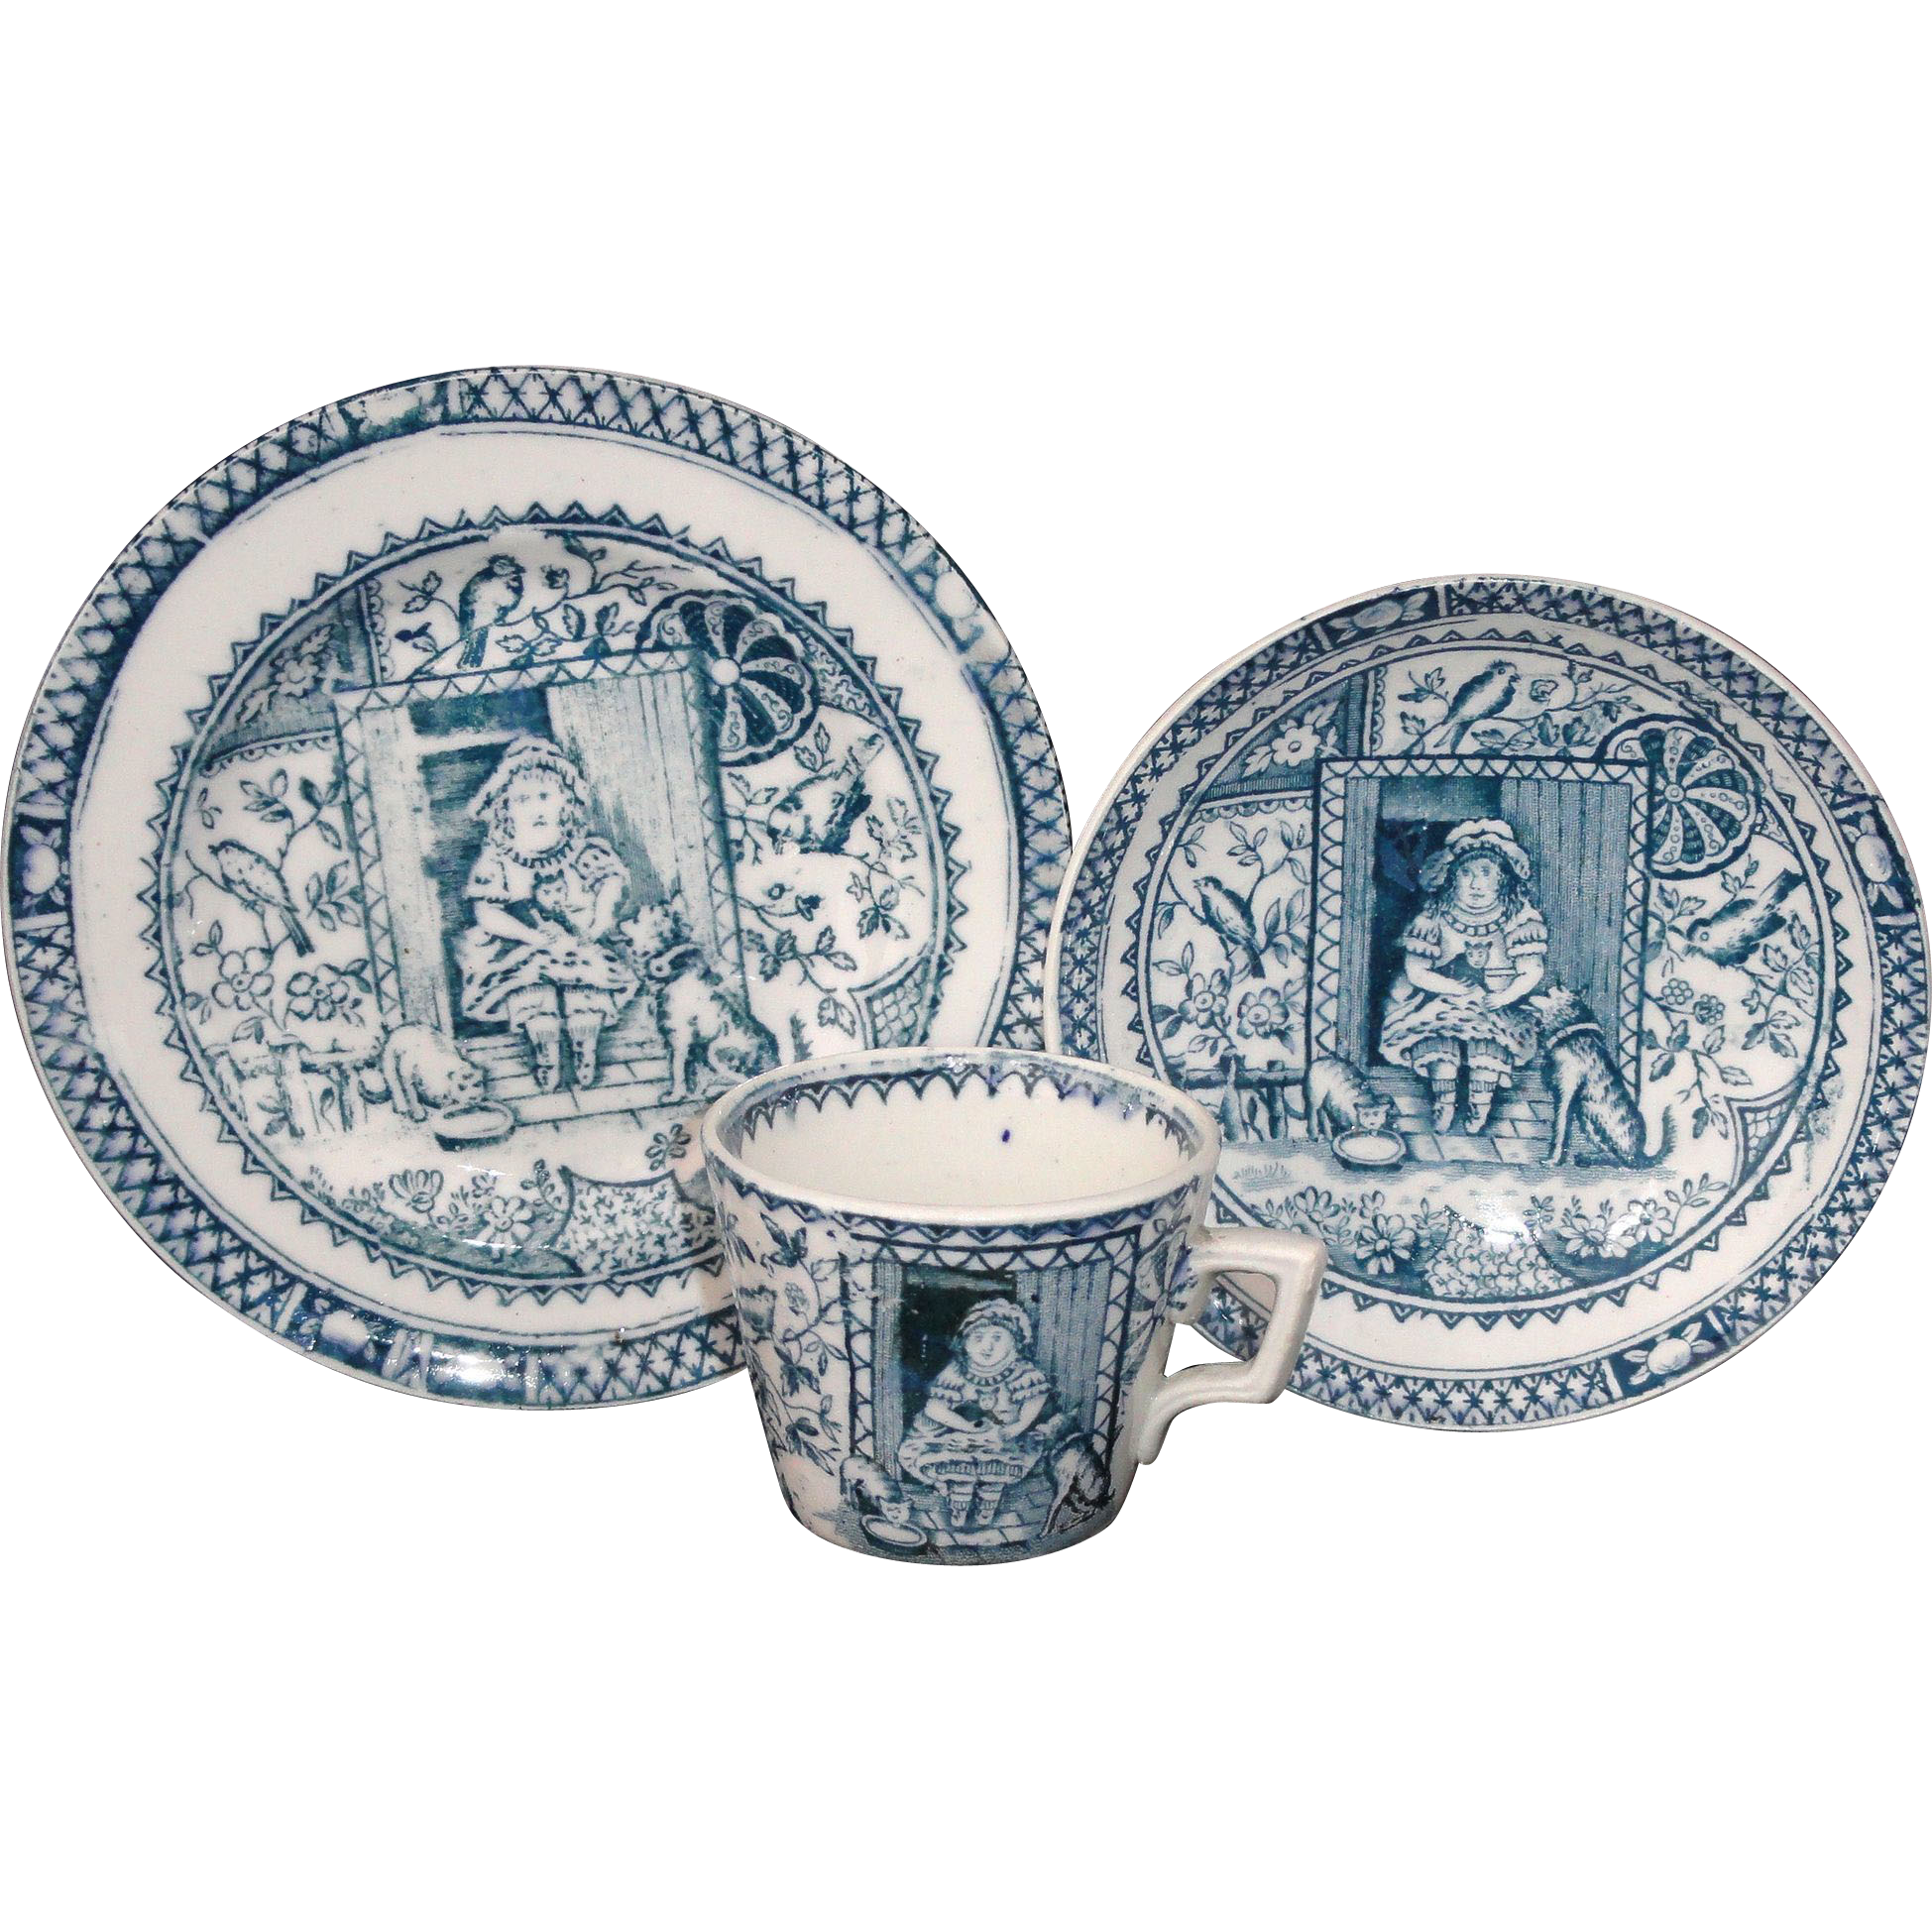 Child's Marine Blue Transferware Tea Set Trio LITTLE MAE WITH PETS Charles Allerton & Sons Staffordshire England c 1890